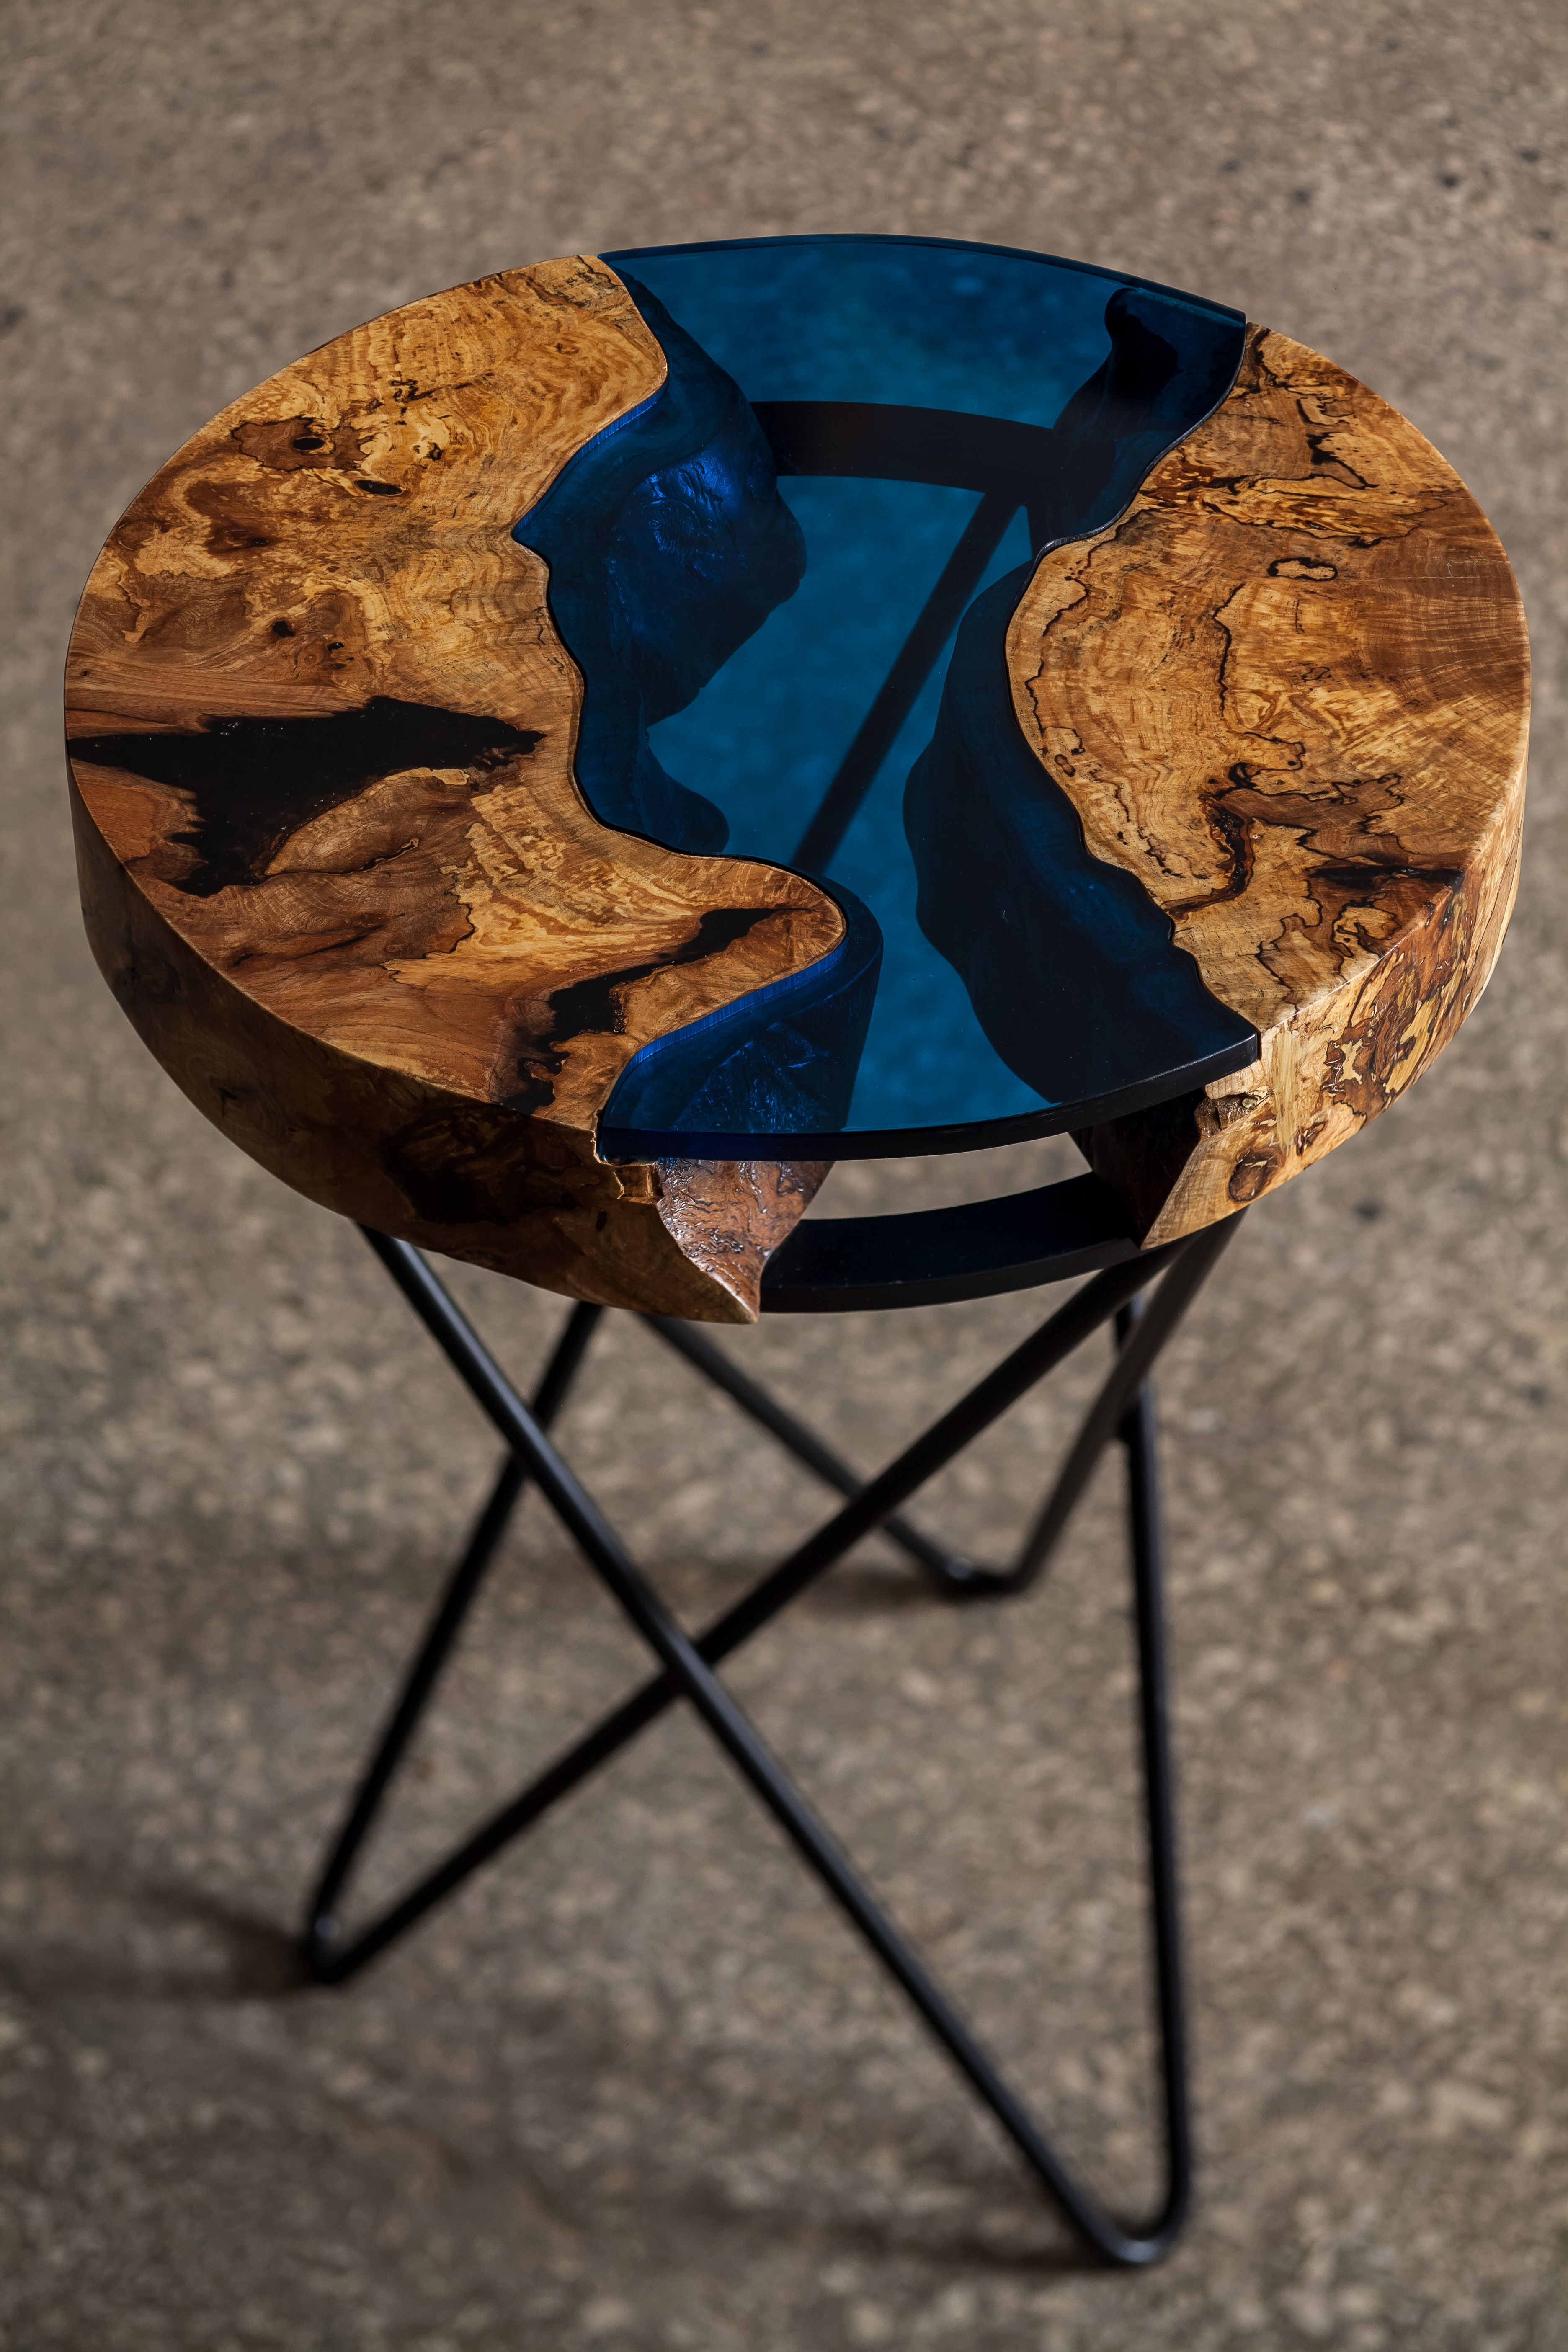 Aqua side table made from ash tree and blue acrylic cracks